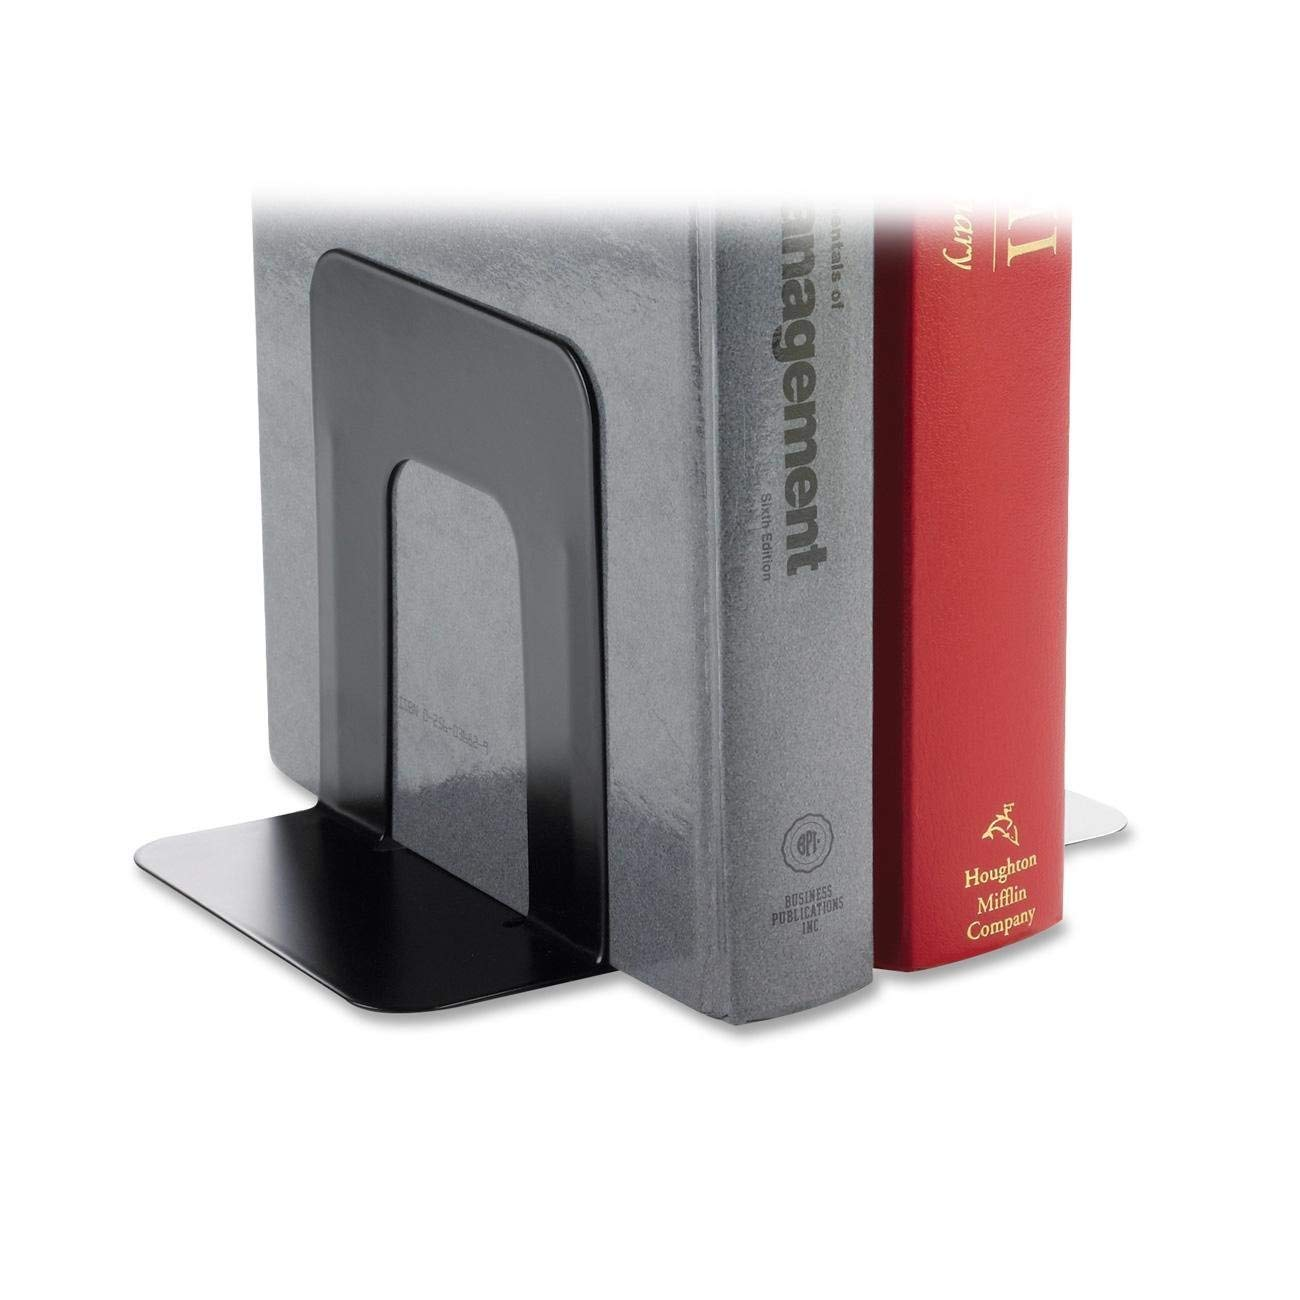 Business Source Products - Bookend Supports, Standard, Black - Sold as 1 PR - Book Supports are Made of Heavy-Gauge Steel with Smooth Edges and Baked Enamel finishes, Pack of 14 (14 Pair) by Business Source